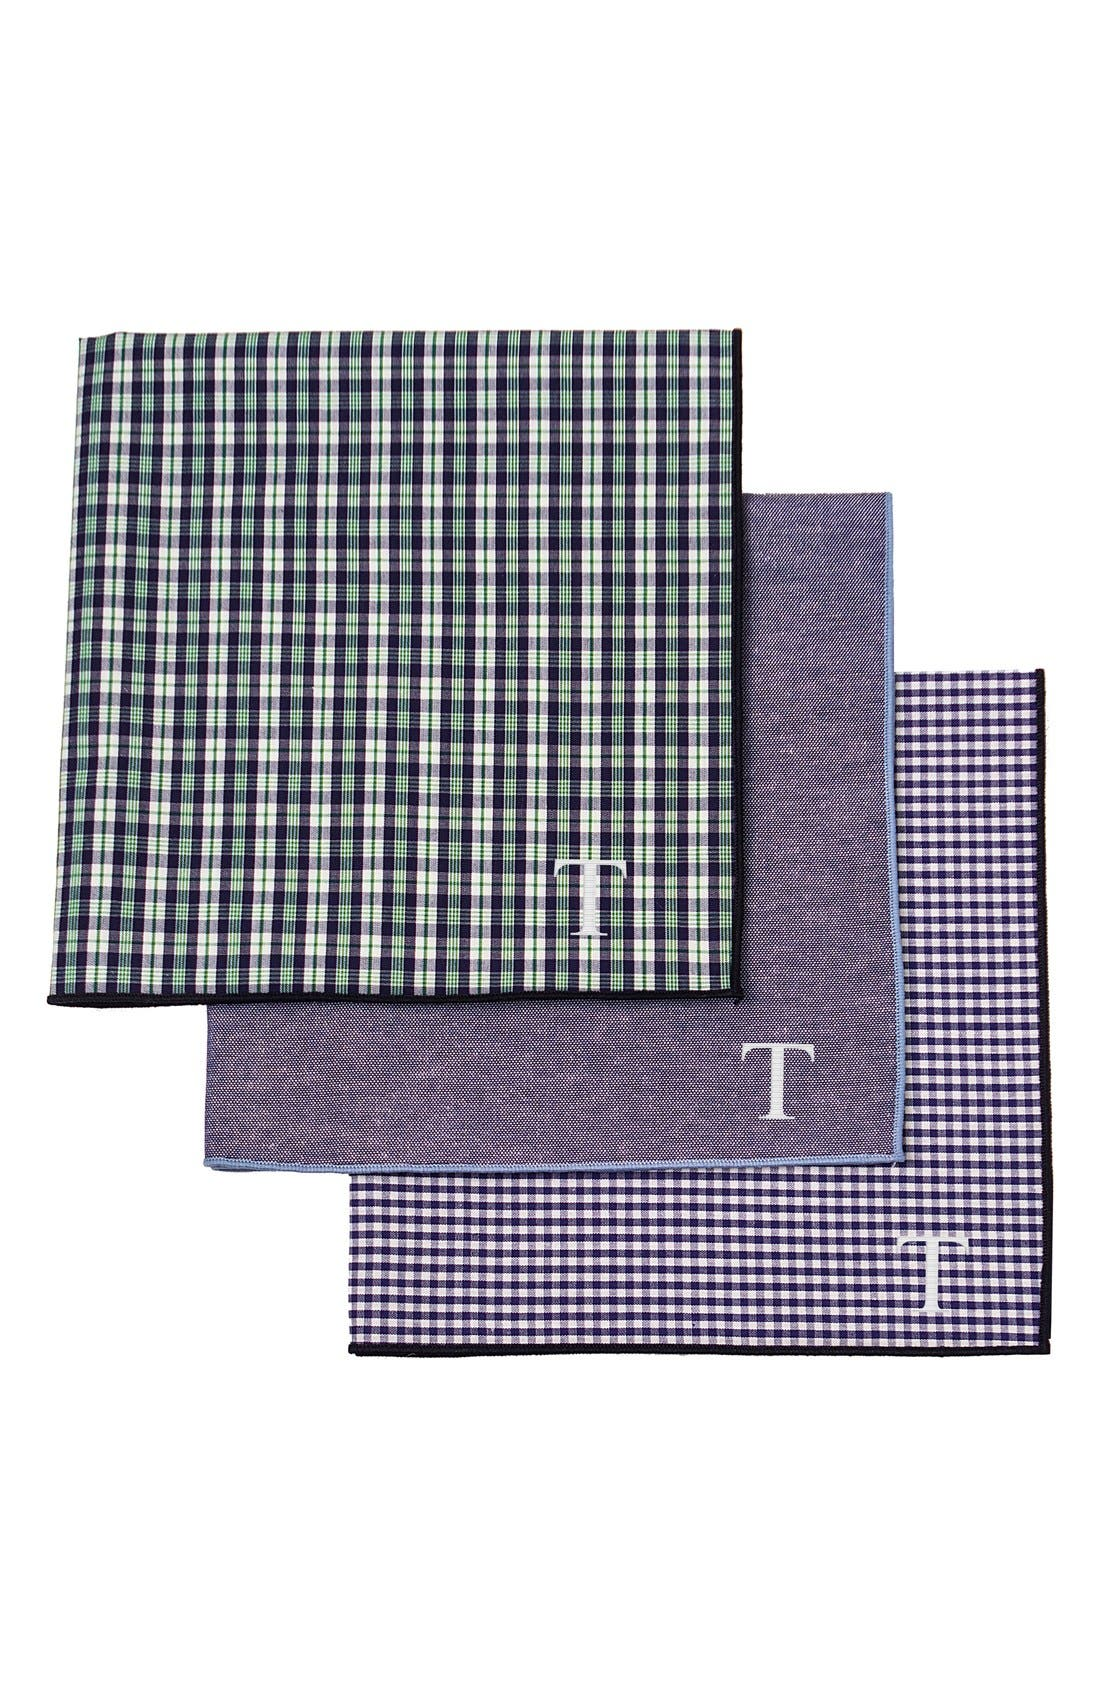 Main Image - Cathy's Concepts Monogram Handkerchiefs (Set of 3)